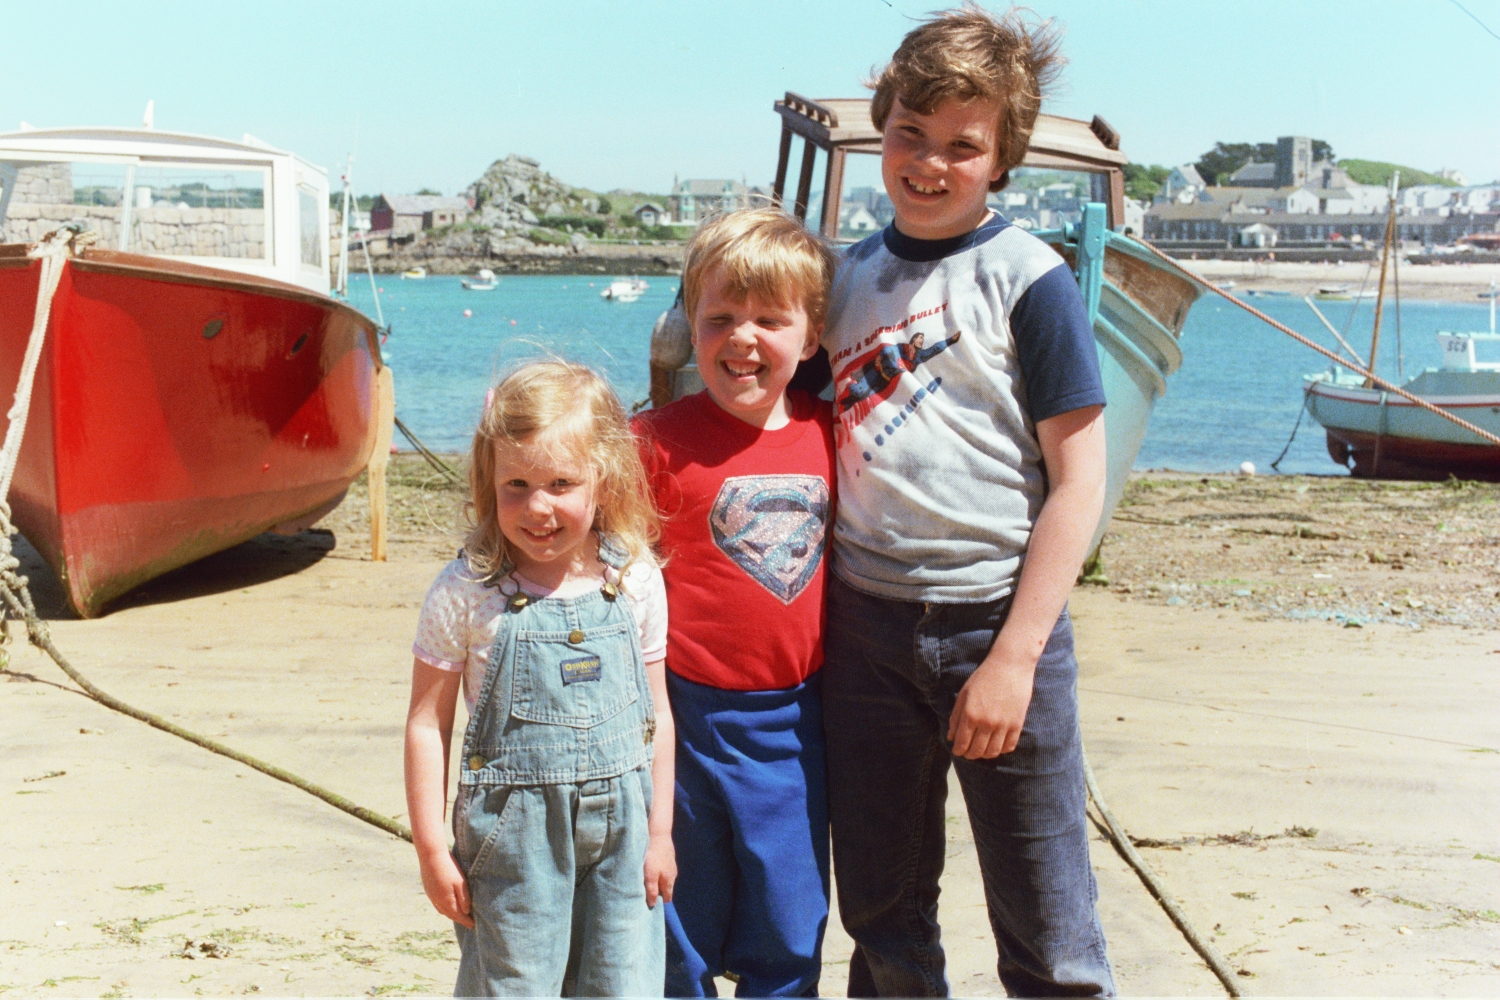 Amy Shearer, Matt Shearer and Russel Shearer on the Beach in 1979